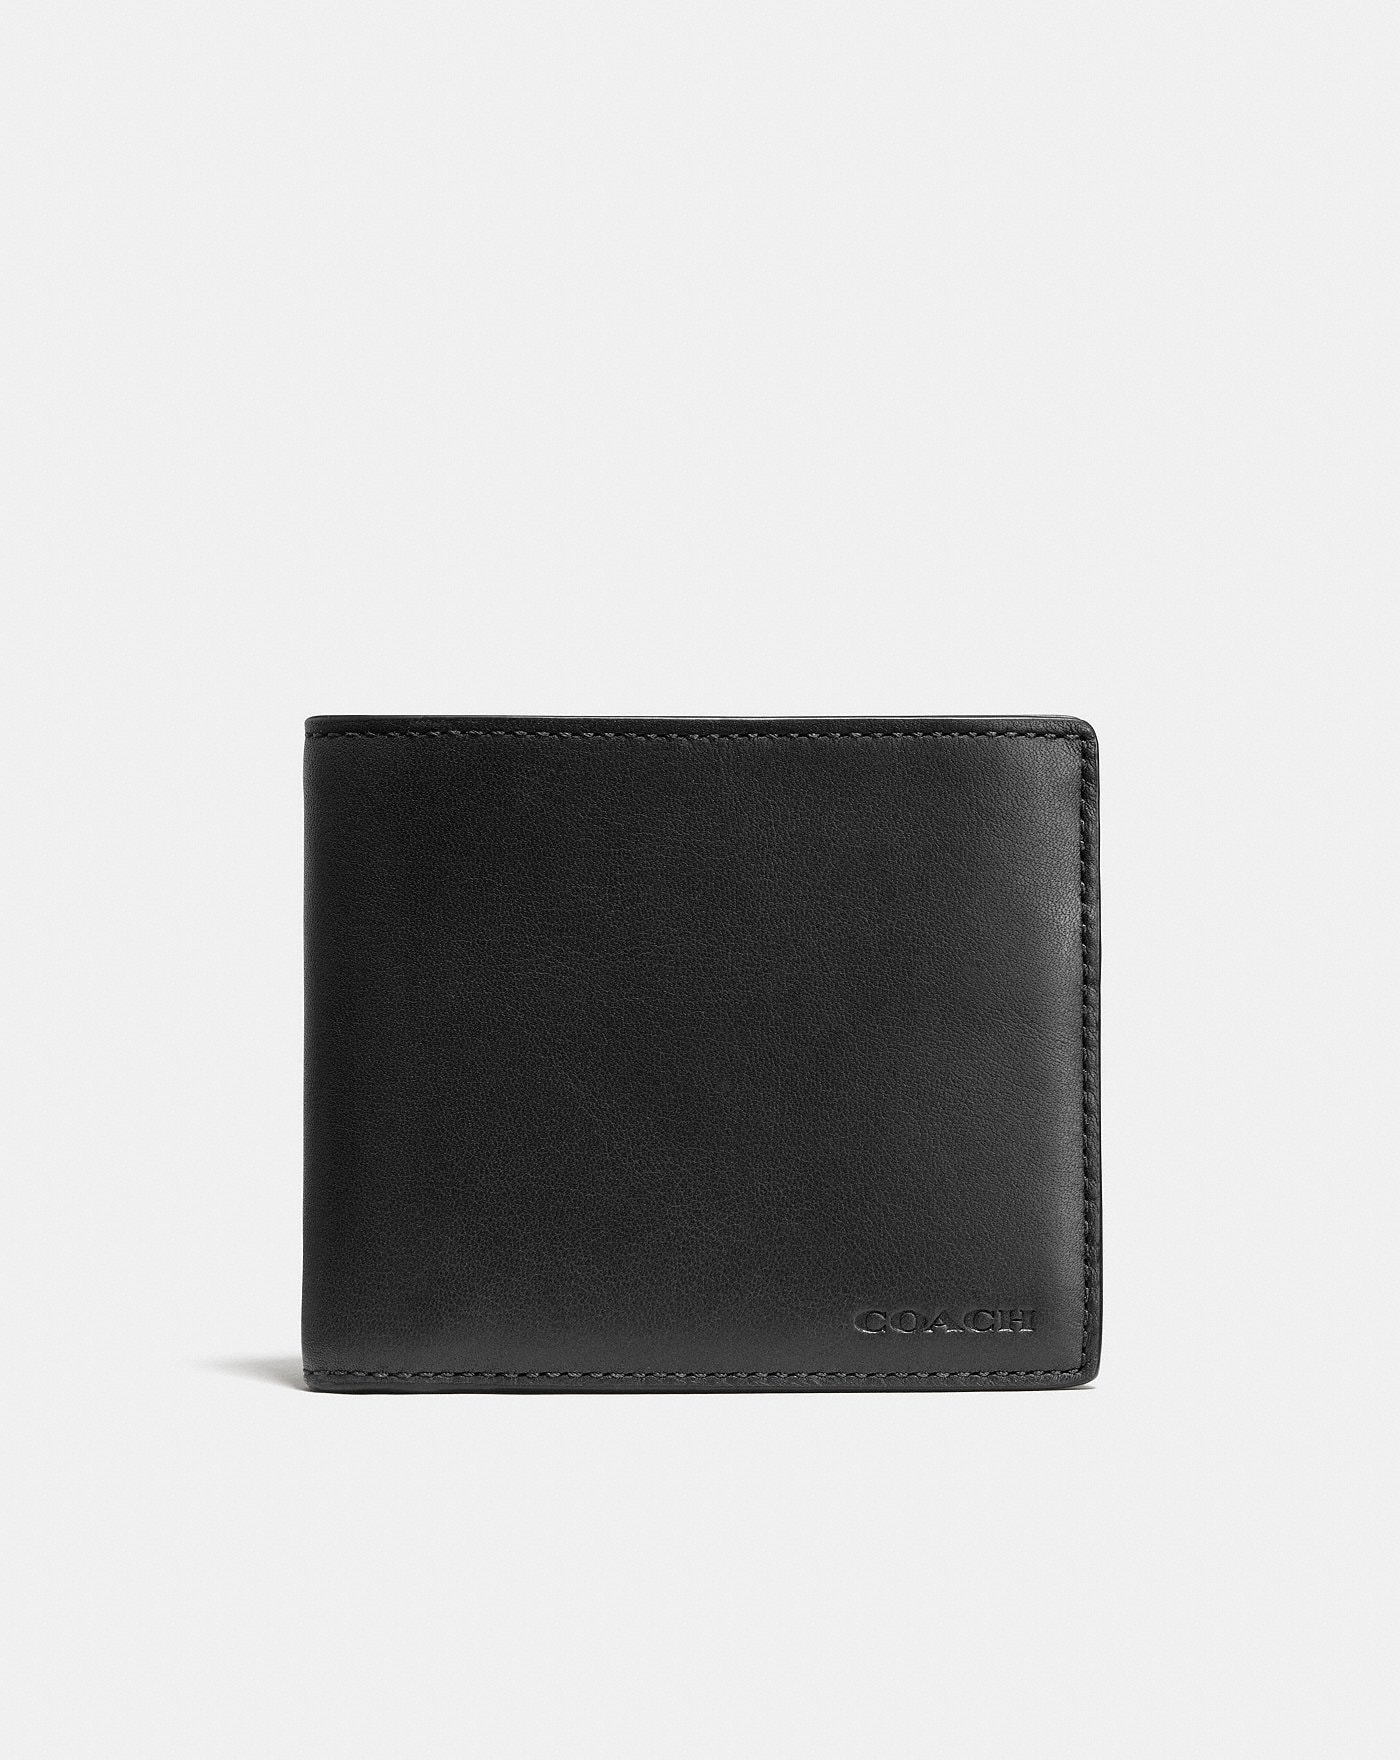 6c6bb651c9f8 Compact Id Wallet